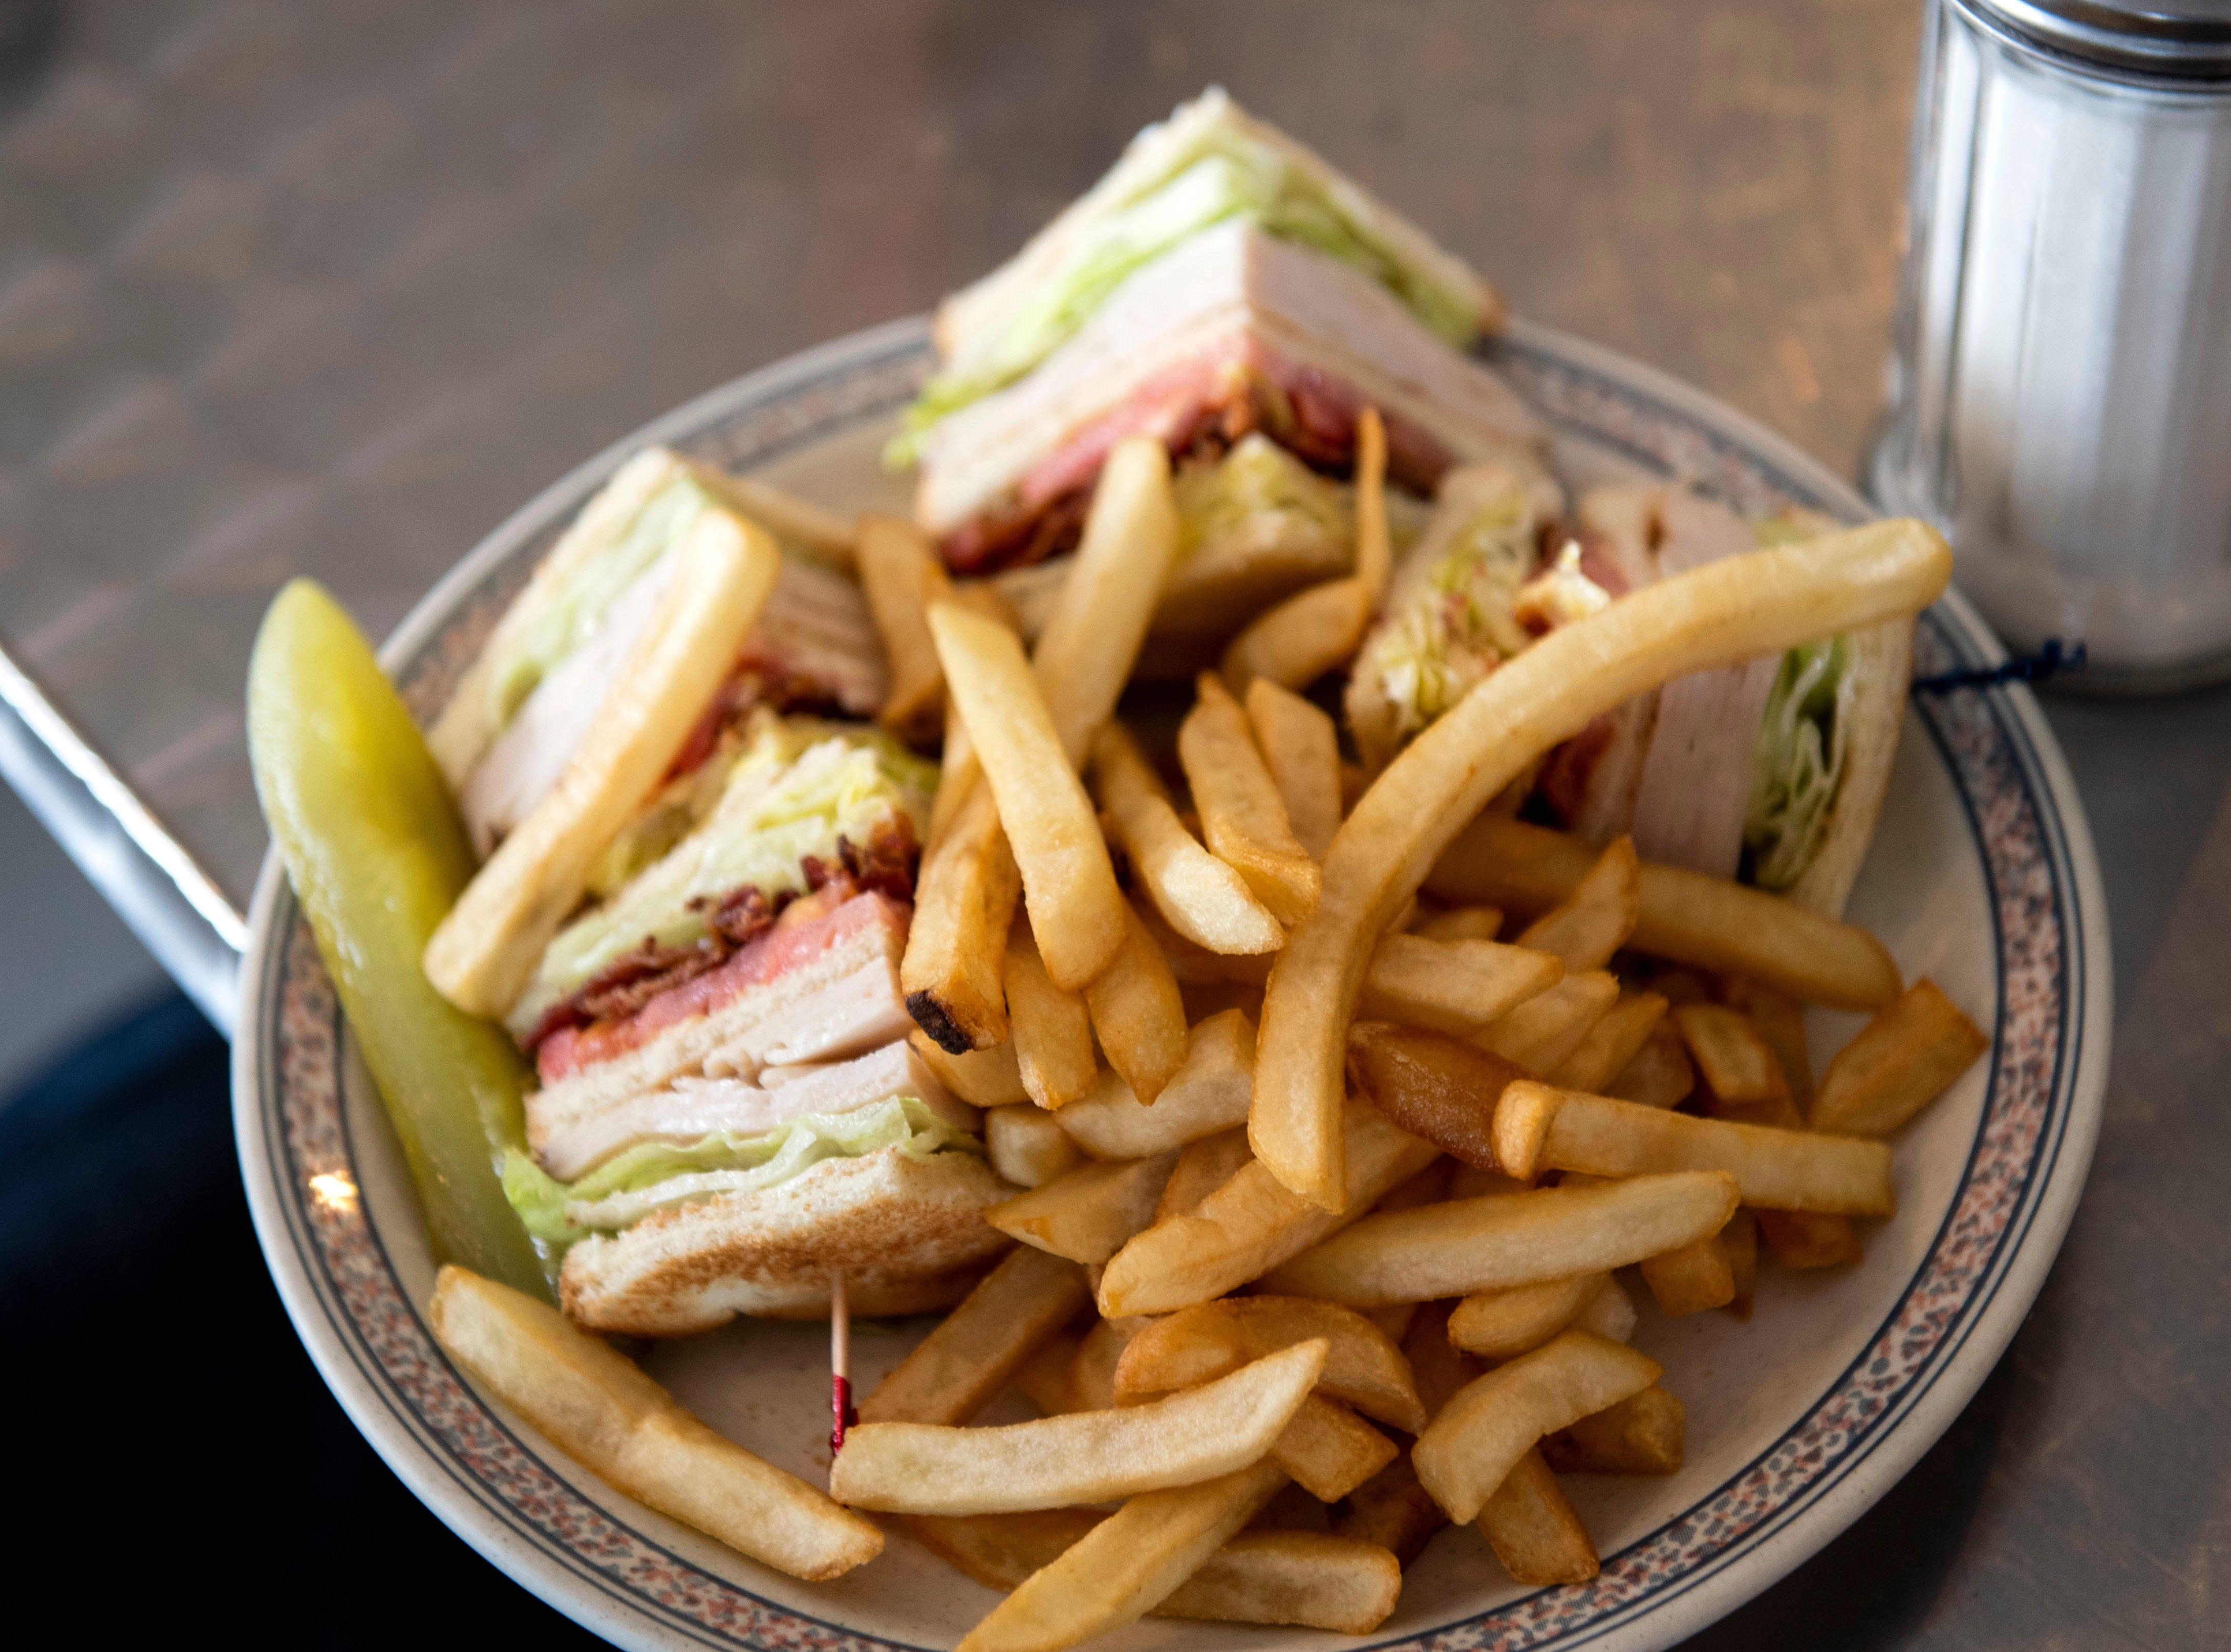 A deli turkey club from Aurora's Bakery on Wednesday, August 1, 2018. Aurora's Bakery opened in July 2018, owned and operated by Mexican immigrants Anselmo Arrieta and his wife Guadelupe Rosete. The pair met in New York City, and moved to York in 2002 to 'chase the American Dream.'